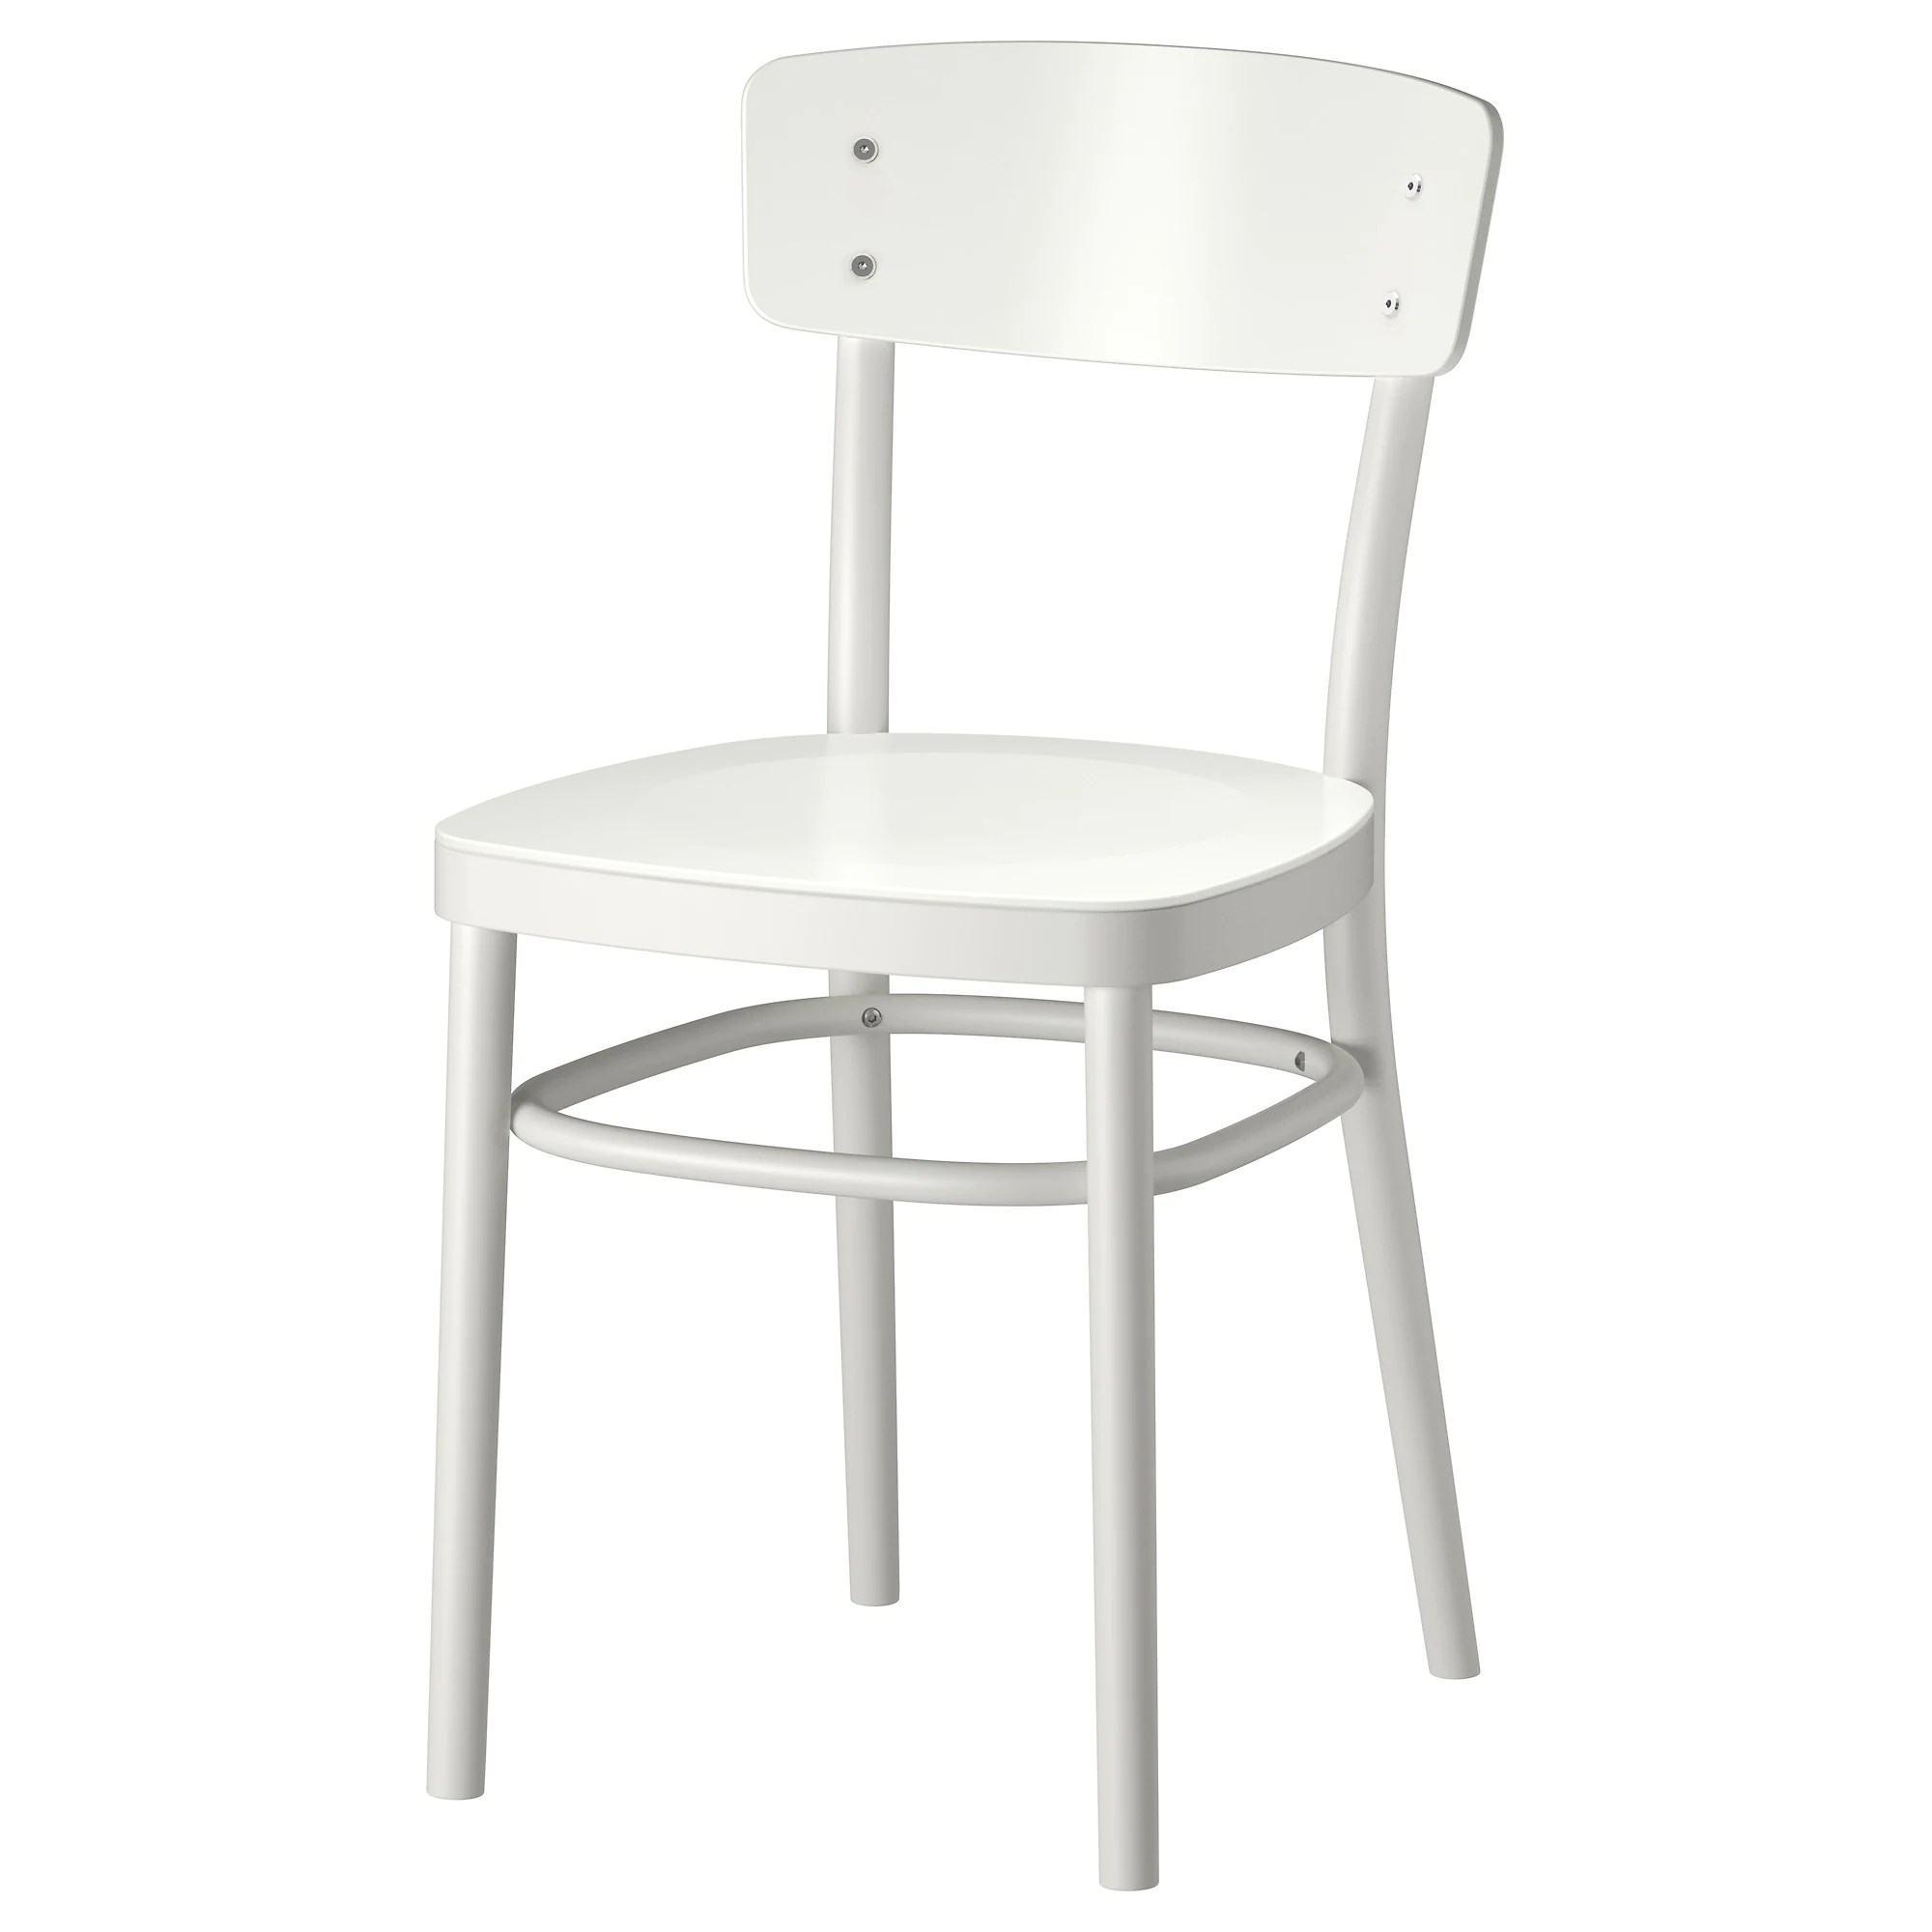 white kitchen chairs IDOLF chair white Tested for lb Width 16 1 2